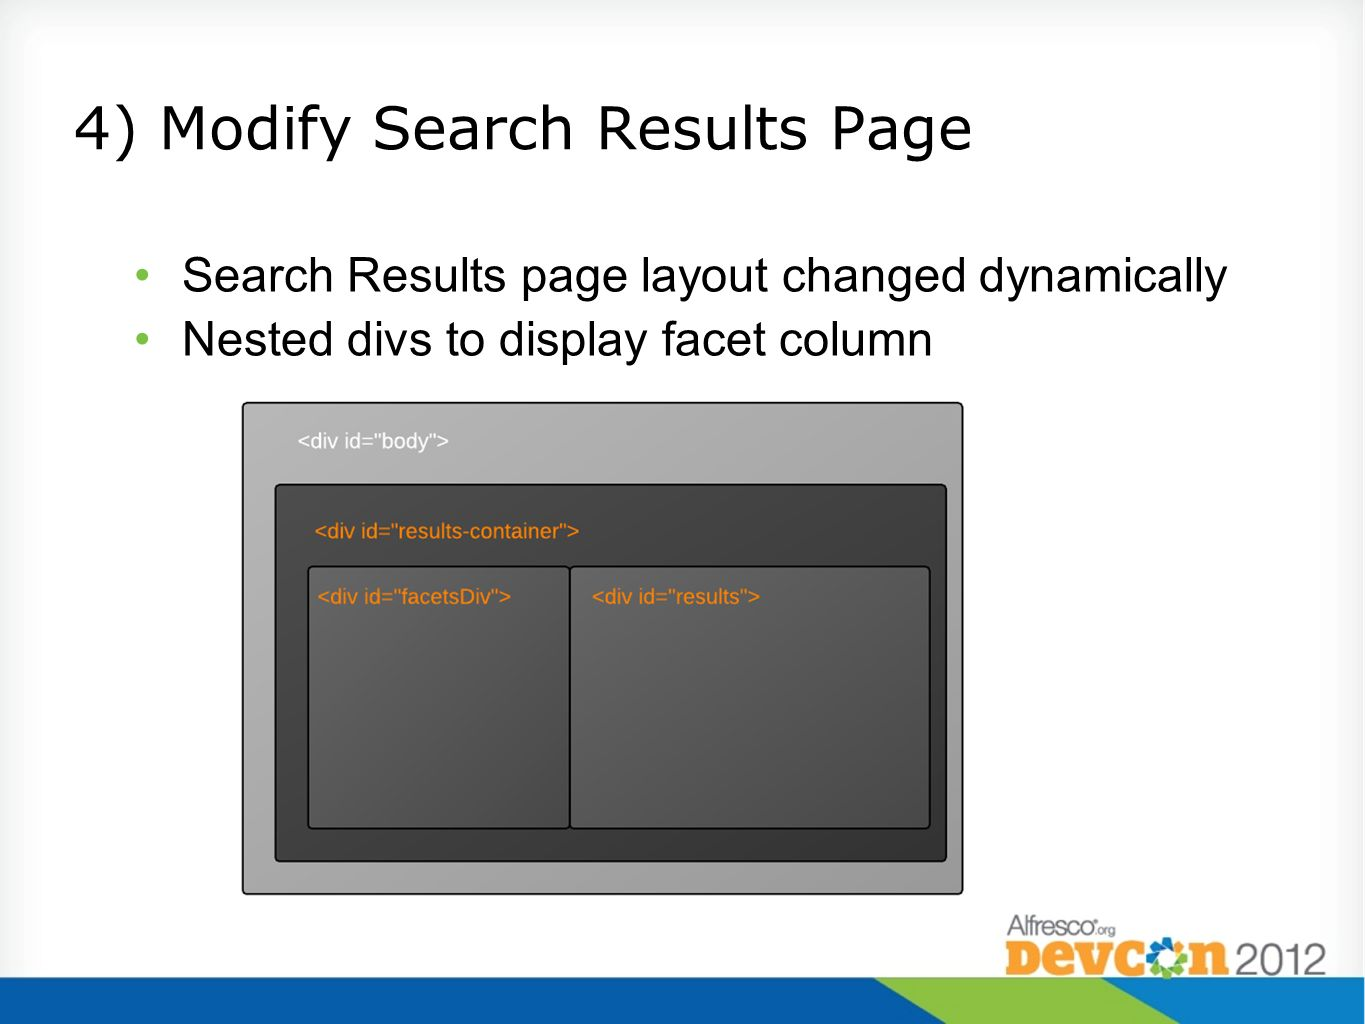 4) Modify Search Results Page